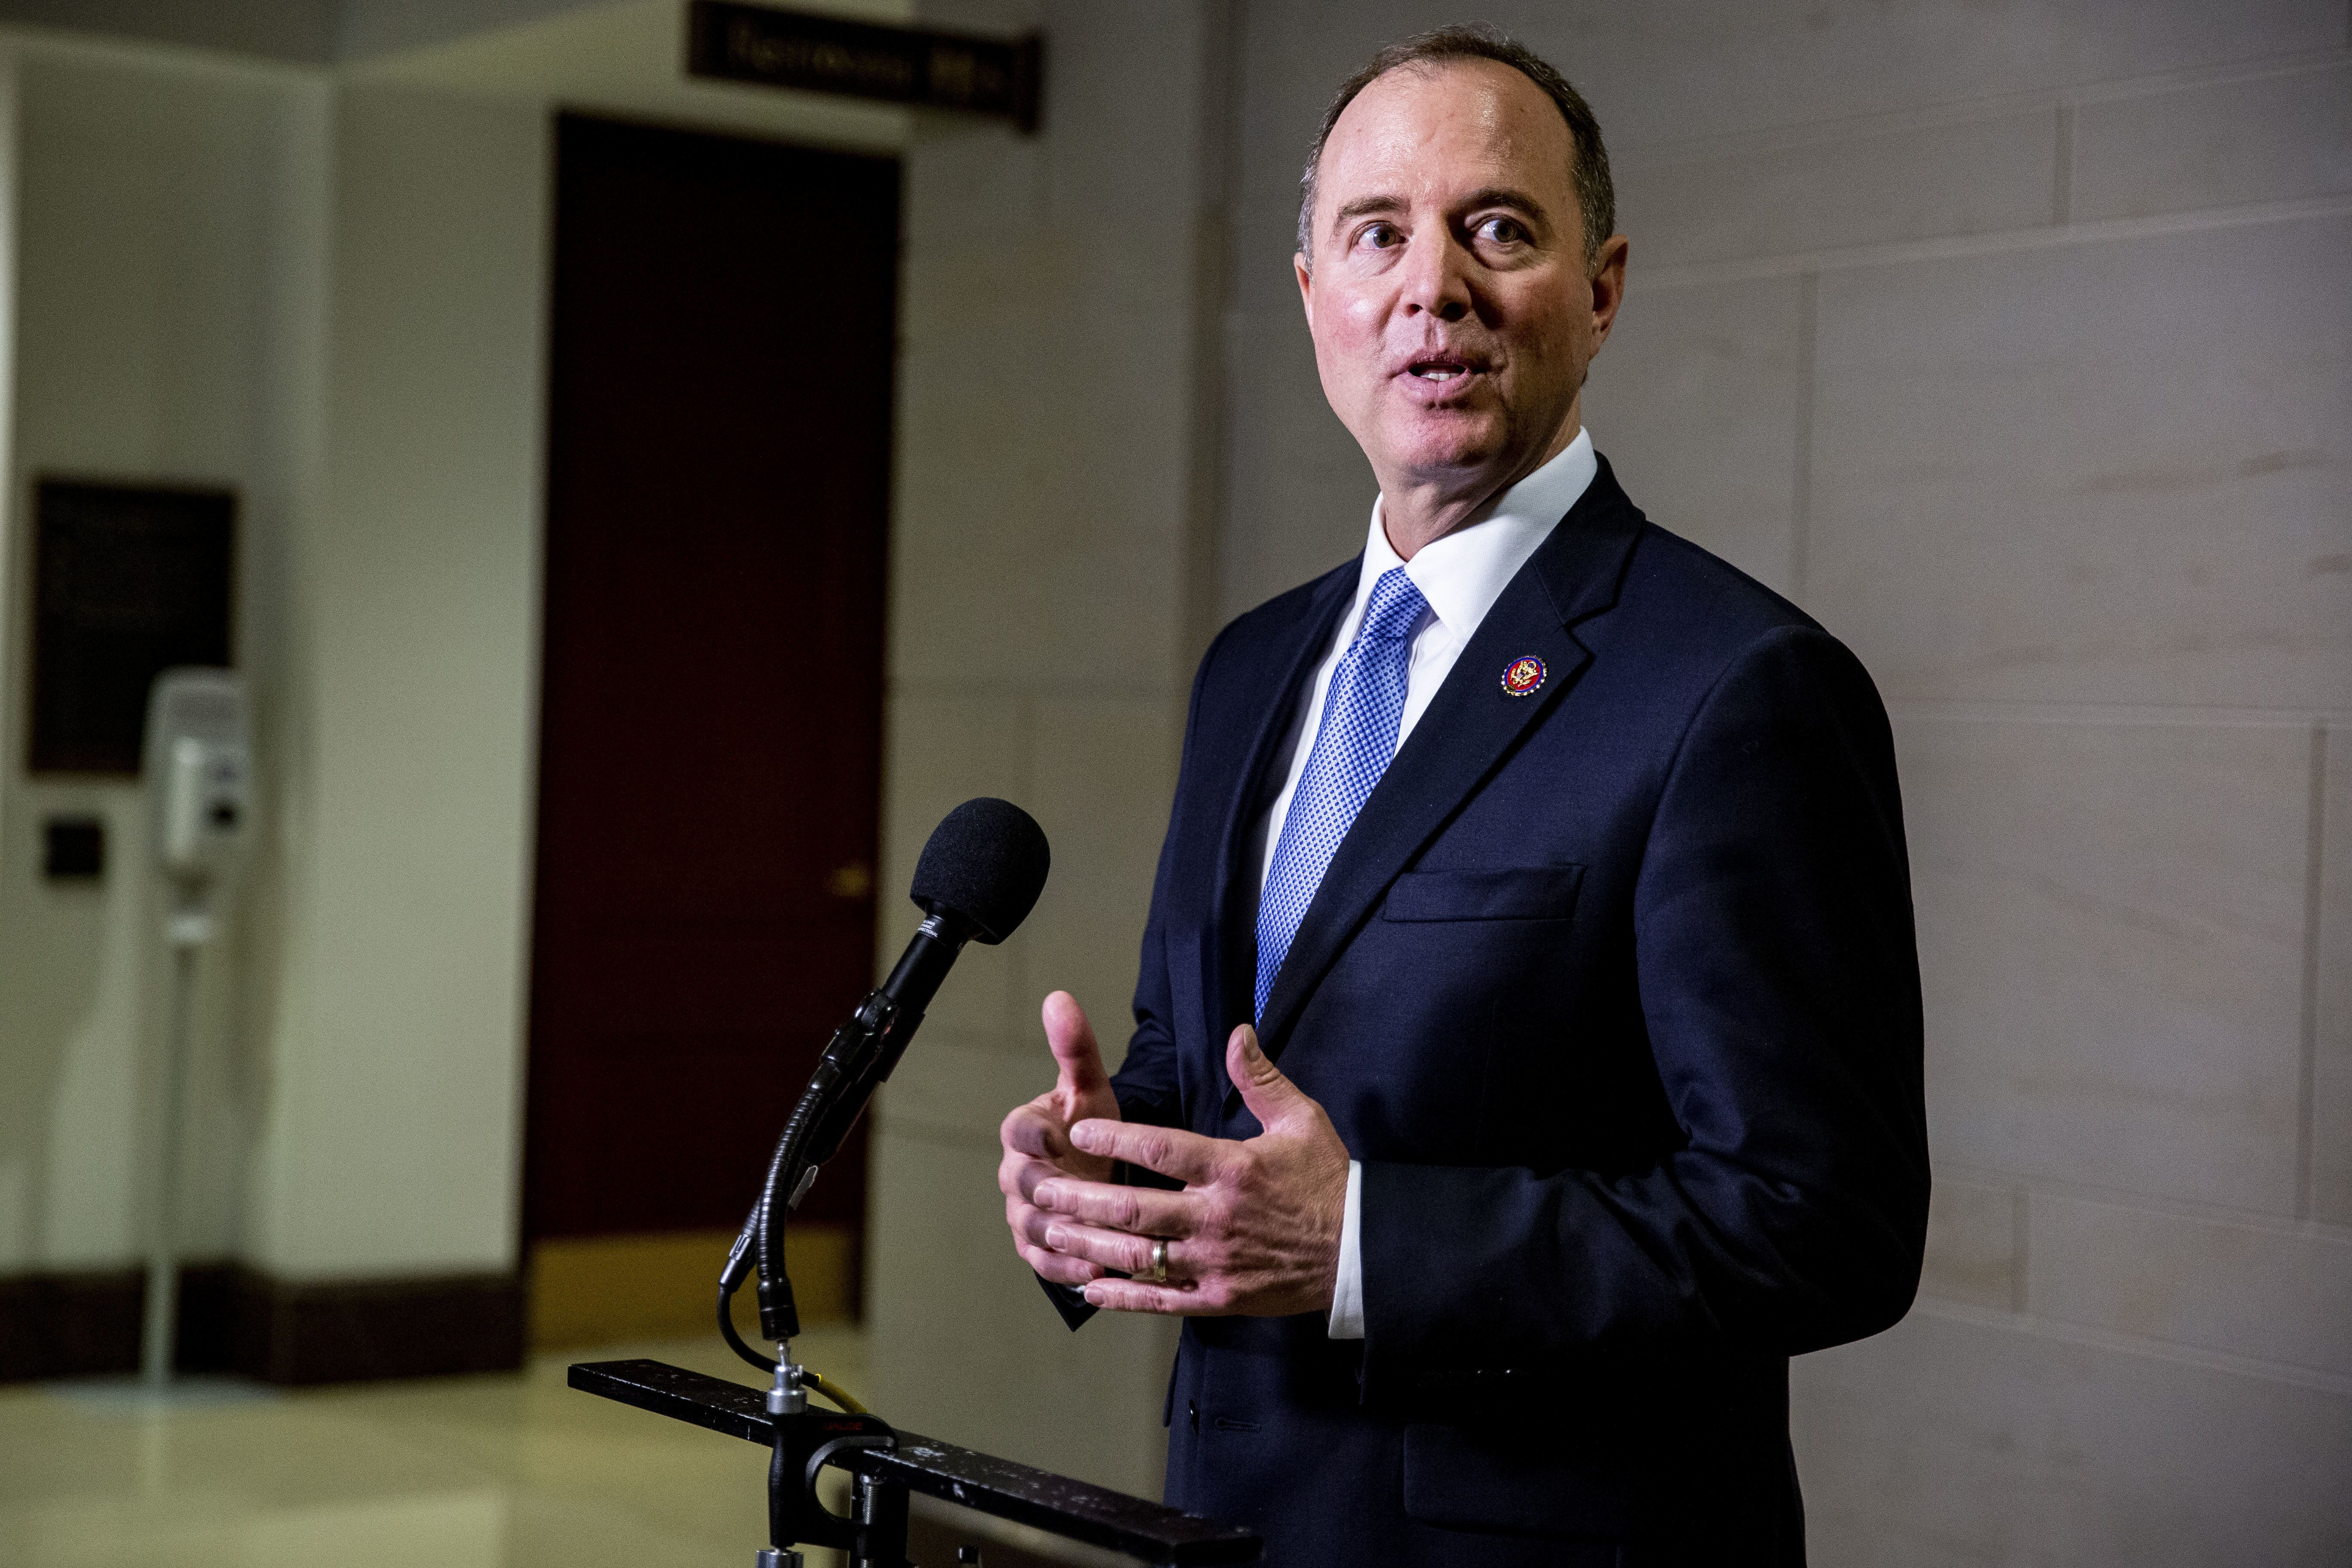 Chairman Adam Schiff, a Democrat from California, speaks to members of the media following a closed door House Intelligence Committee meeting with Michael Cohen, former personal lawyer to U.S. President Donald Trump, in Washington, D.C., U.S., on Wednesday, March 6, 2019. Cohen last week laid out a litany of damning allegations against his former boss Trump, staying emphatic and calm as Republicans on a congressional committee assailed him as a convicted liar out to gain publicity and hurt the president. Photographer: Anna Moneymaker/Bloomberg via Getty Images